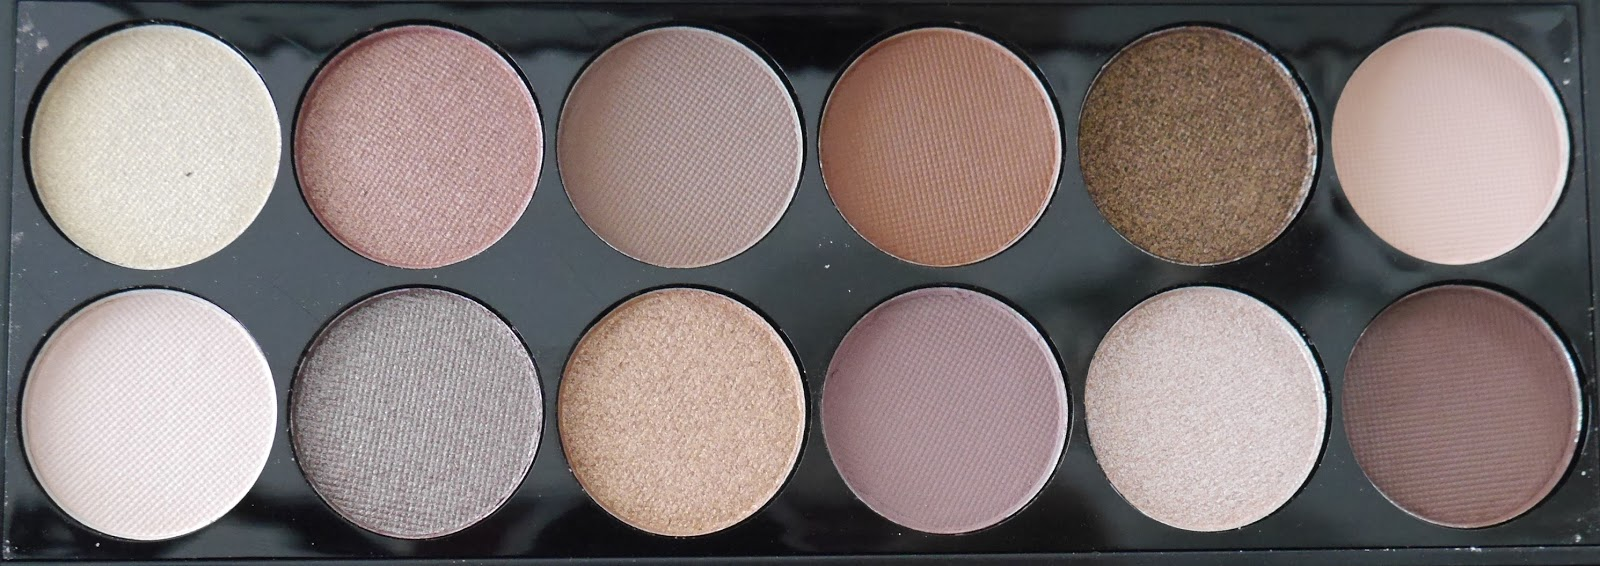 Sleek, eyeshadow, makeup, eyeshadow palettes, drugstore